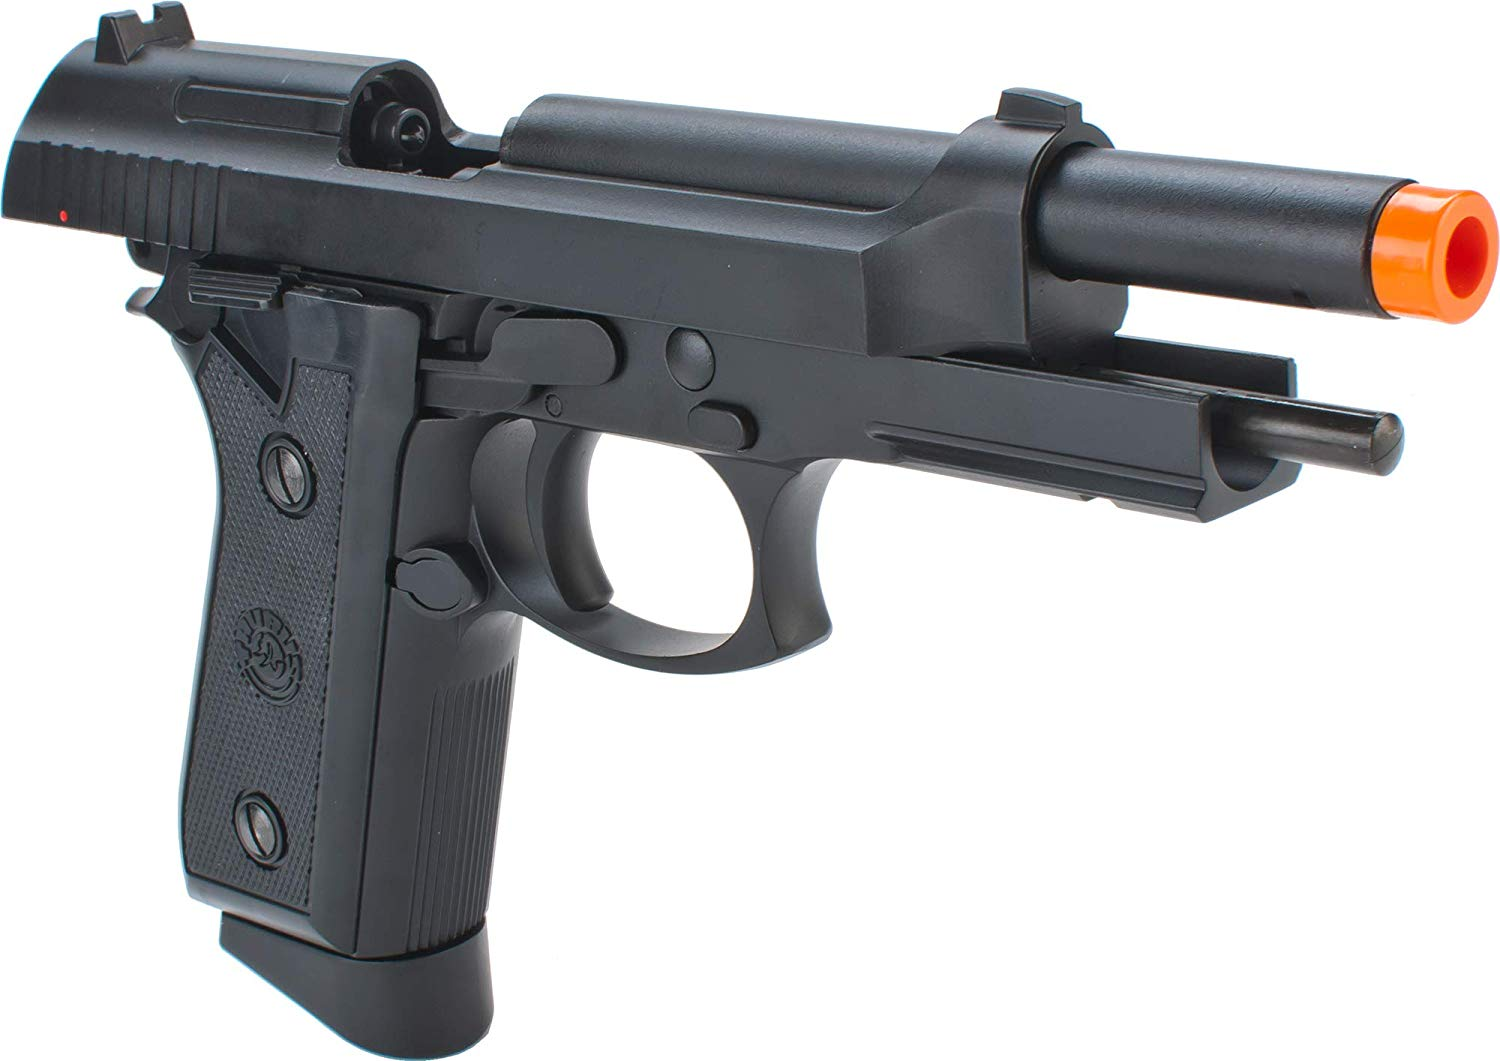 TAURUS PT99 SEMI & FULL AUTO CO2 METAL BLOW BACK PISTOL